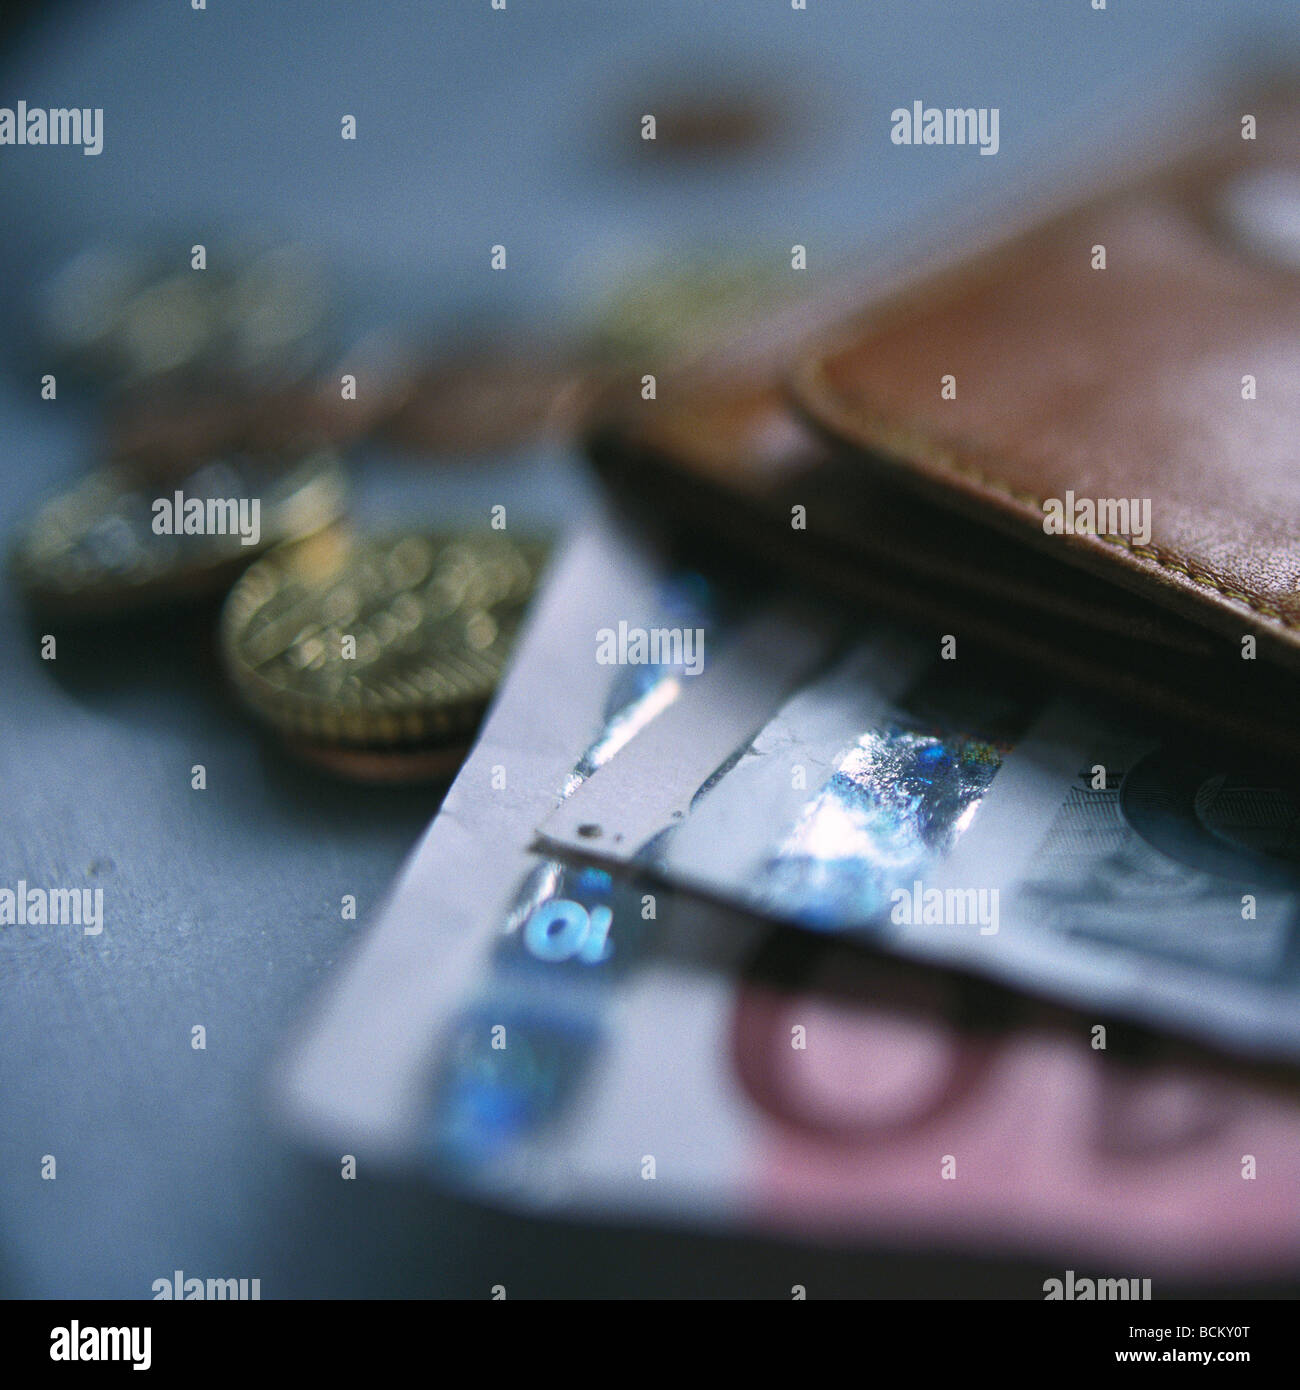 Euro currency and edge of wallet, close-up - Stock Image